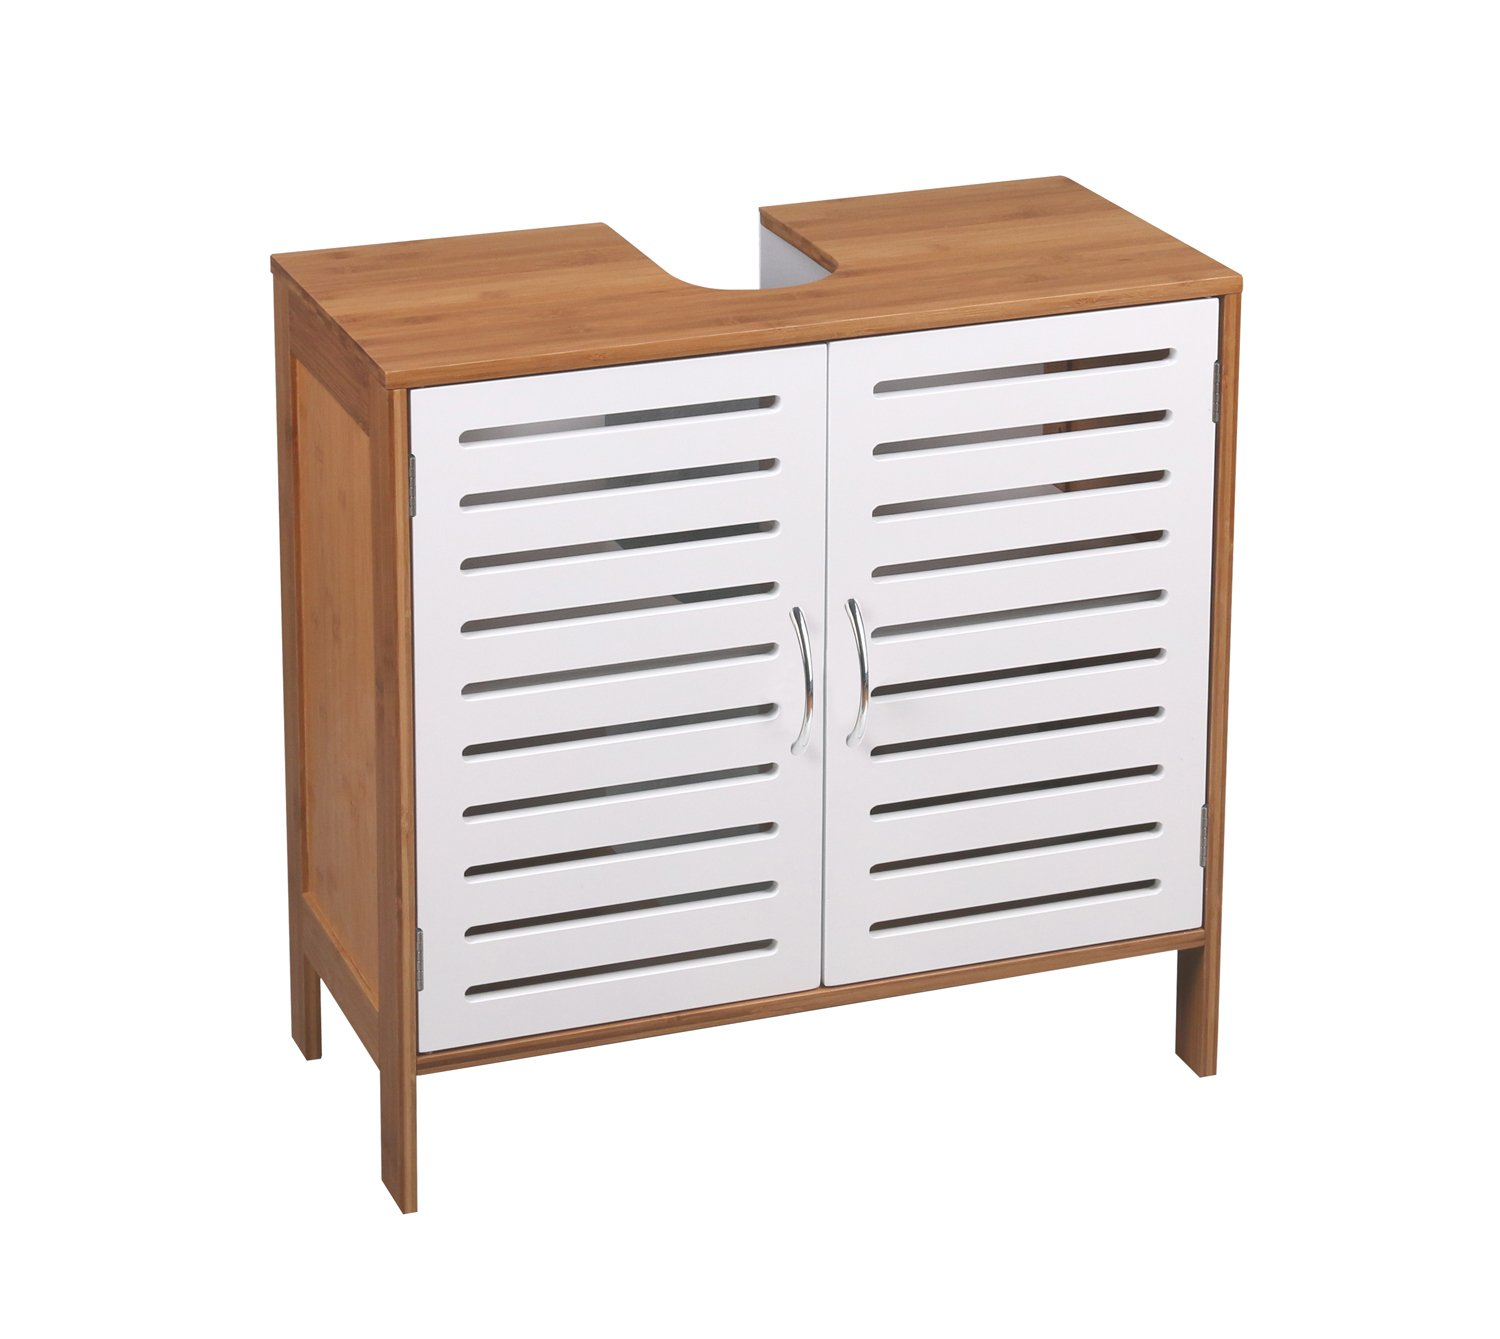 Home Source Tall Slim Bathroom Storage Cabinet White Bamboo 3 Open Shelf 1 Door Cupboard KL-DYHW12129 Stockholm Tall